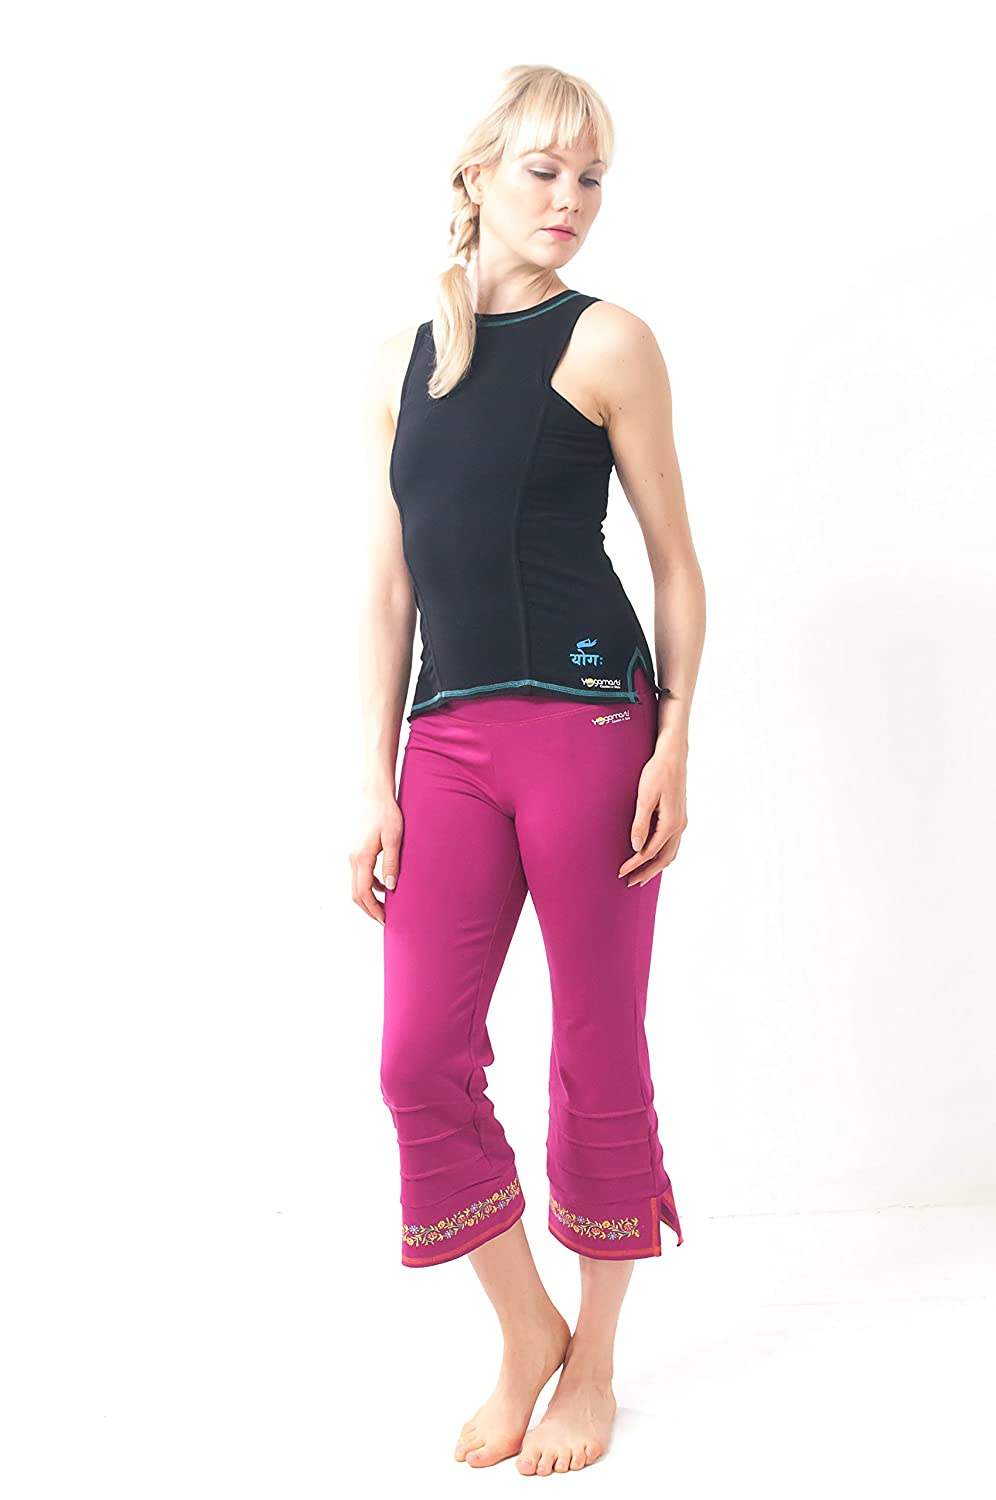 Yogamasti Practice Yoga Capri Hand Painted Detail Stretch with Cotton Fabric